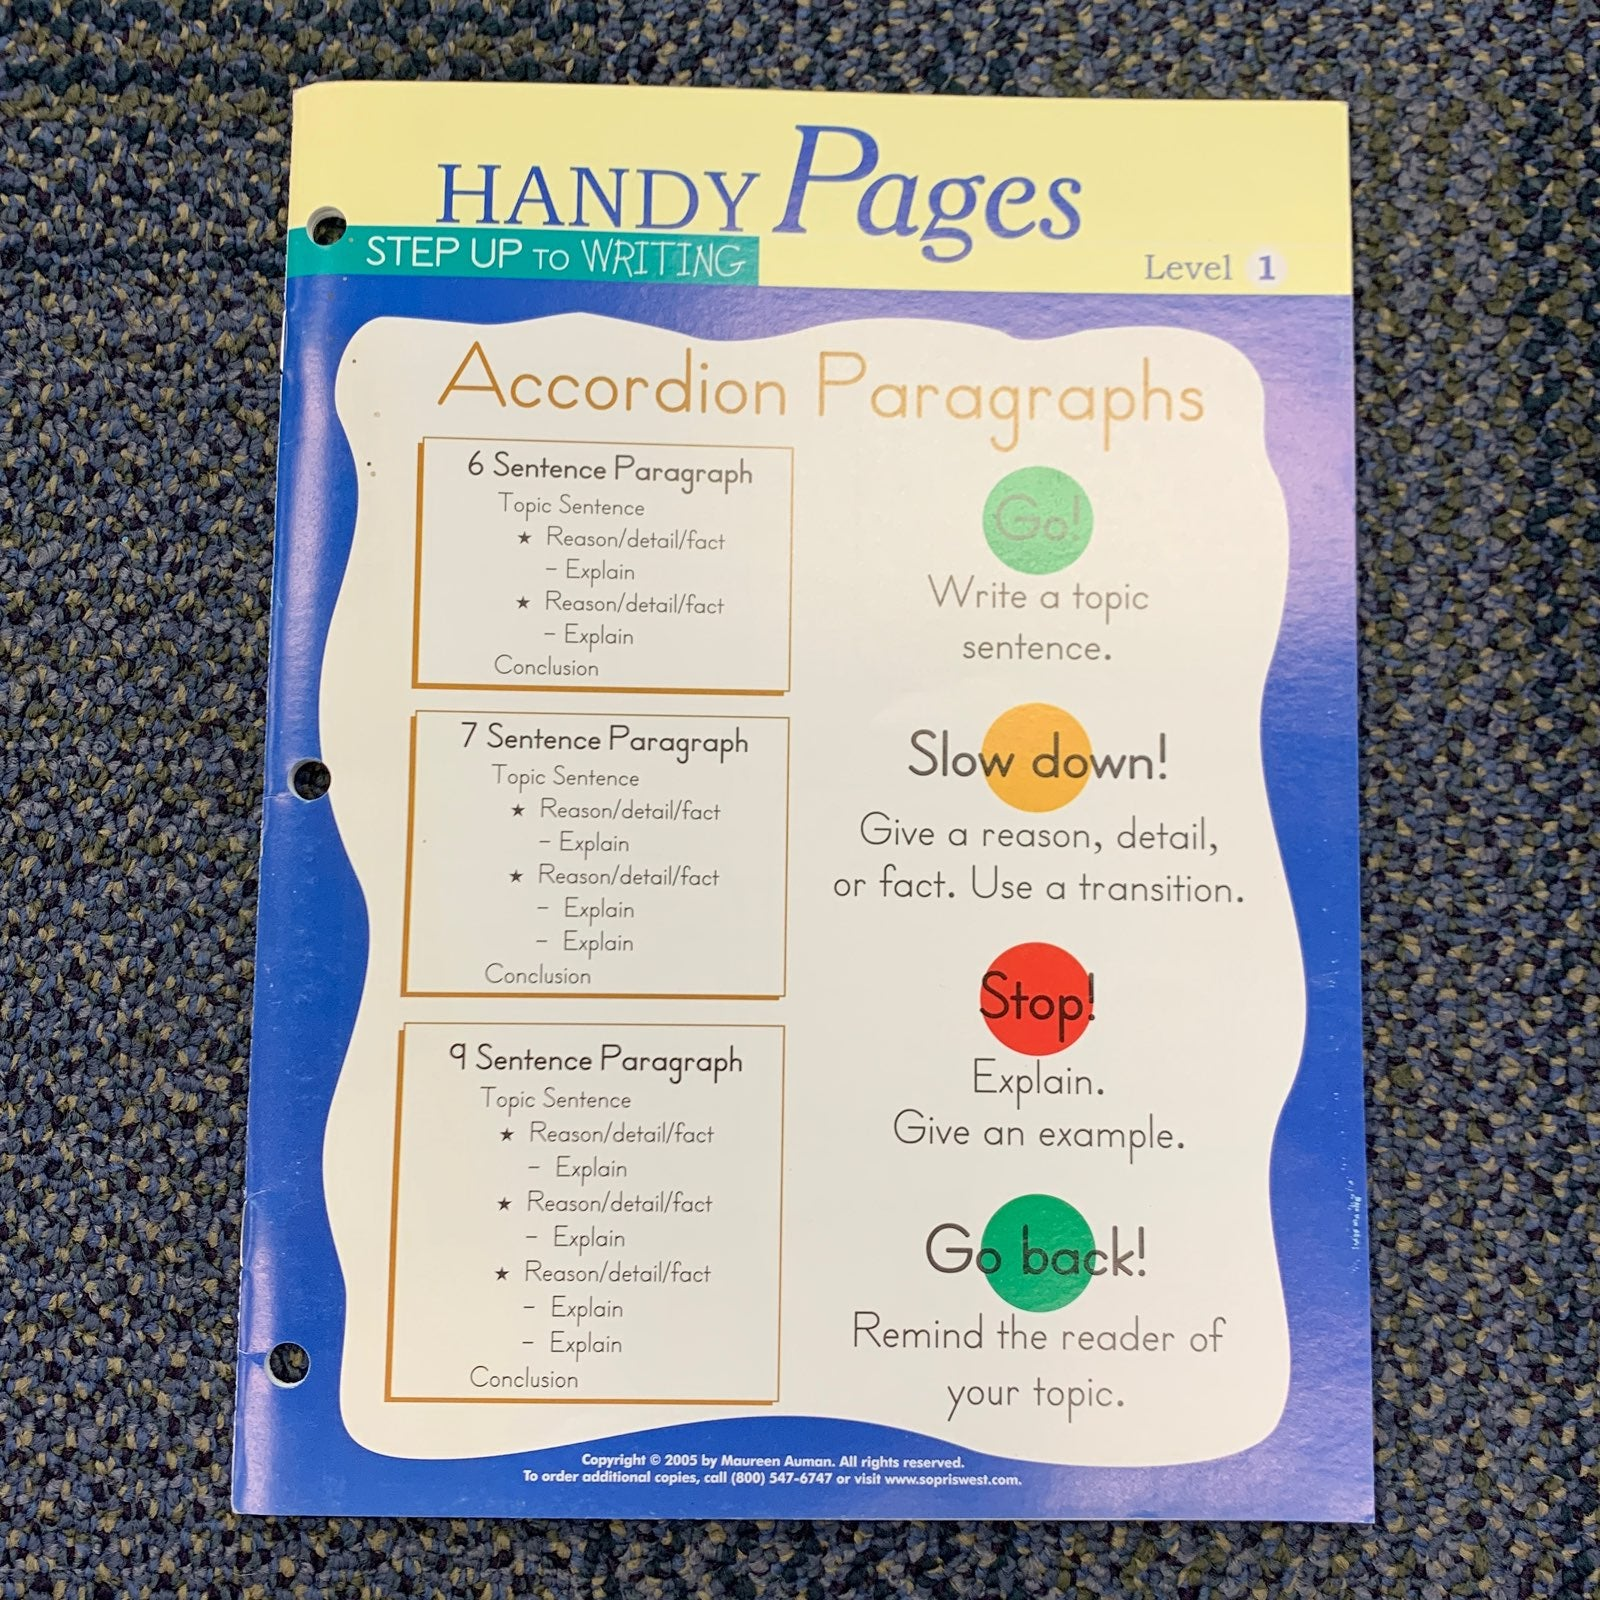 Handy Pages - Step Up to Writing